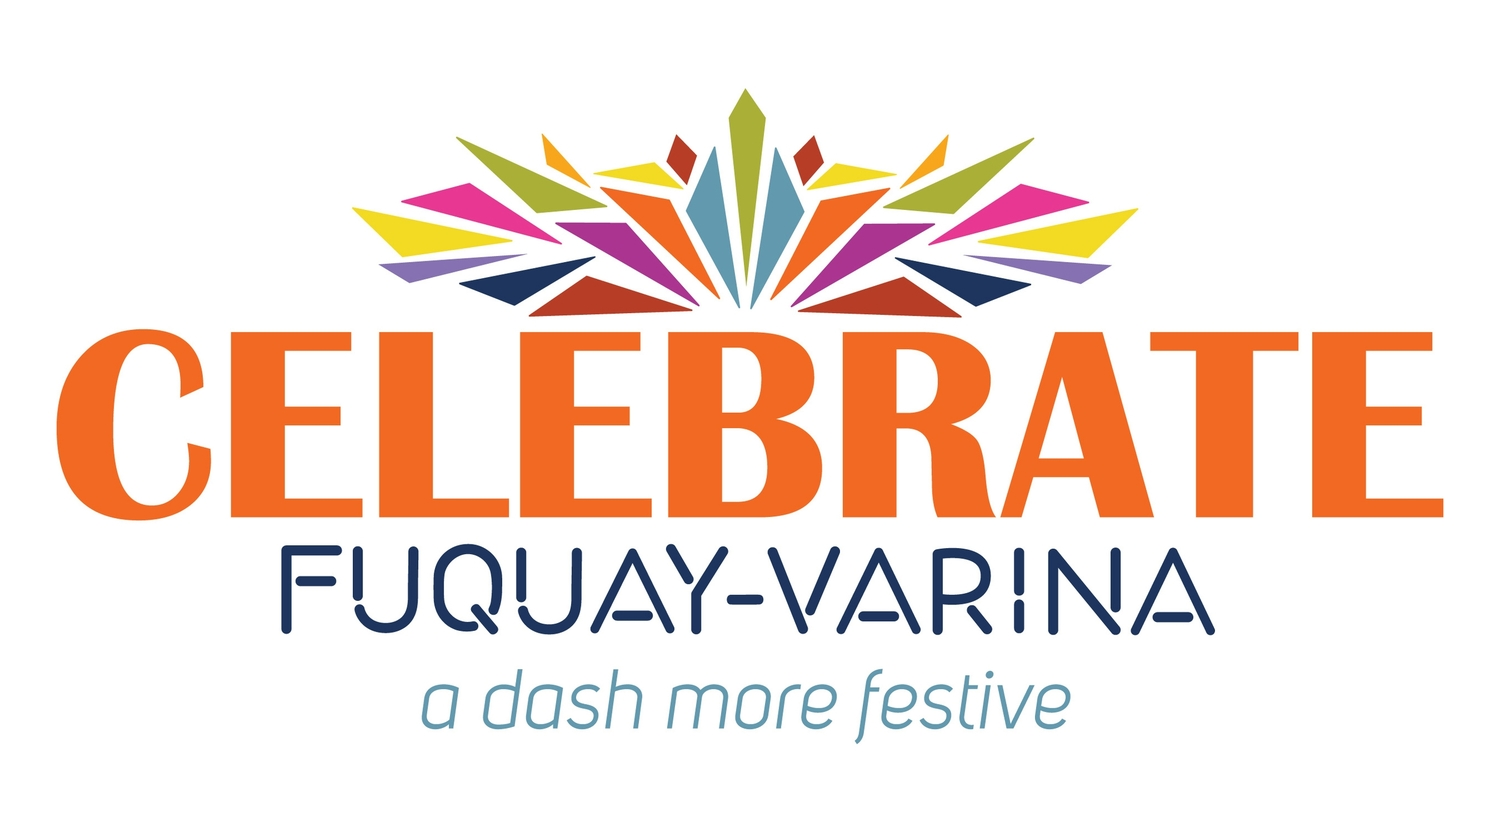 Celebrate Fuquay-Varina